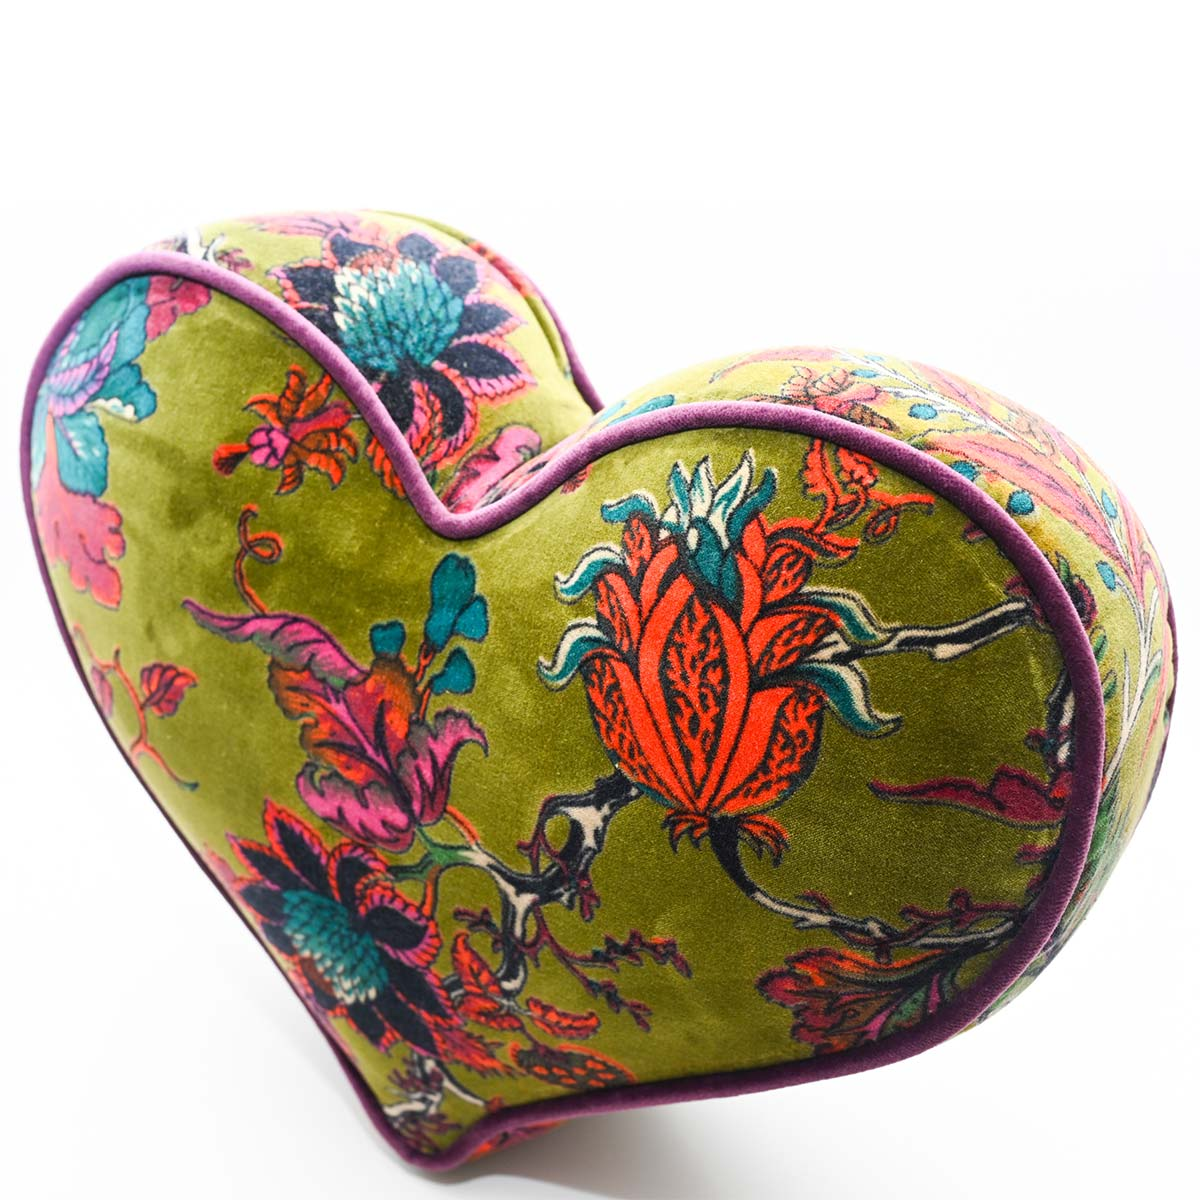 heart pillow large size olive green DSC 6348